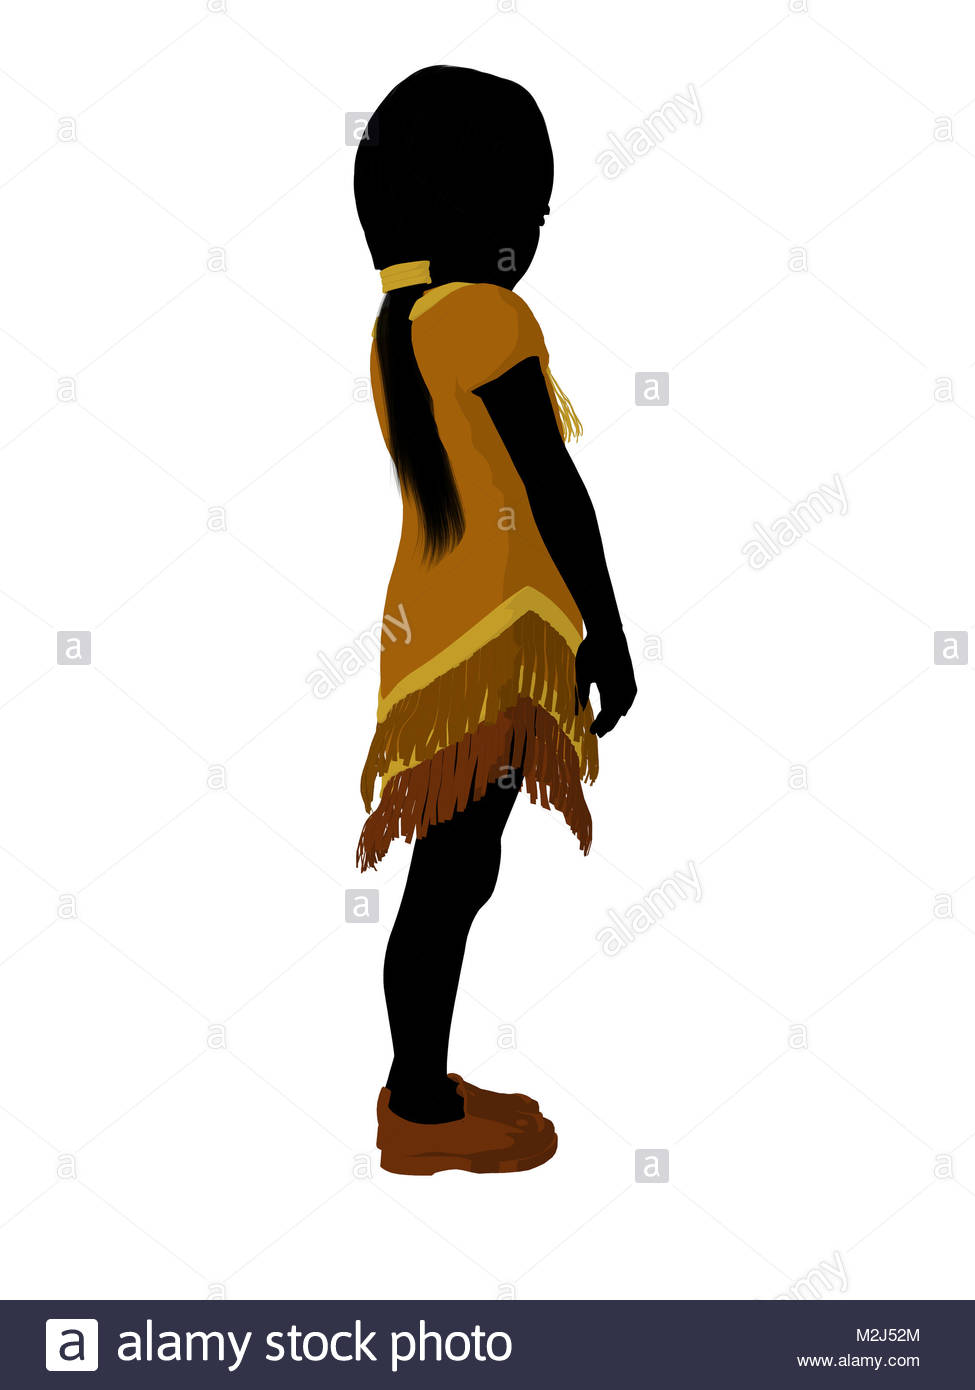 975x1390 Native American Indian Silhouette Illustration On A White